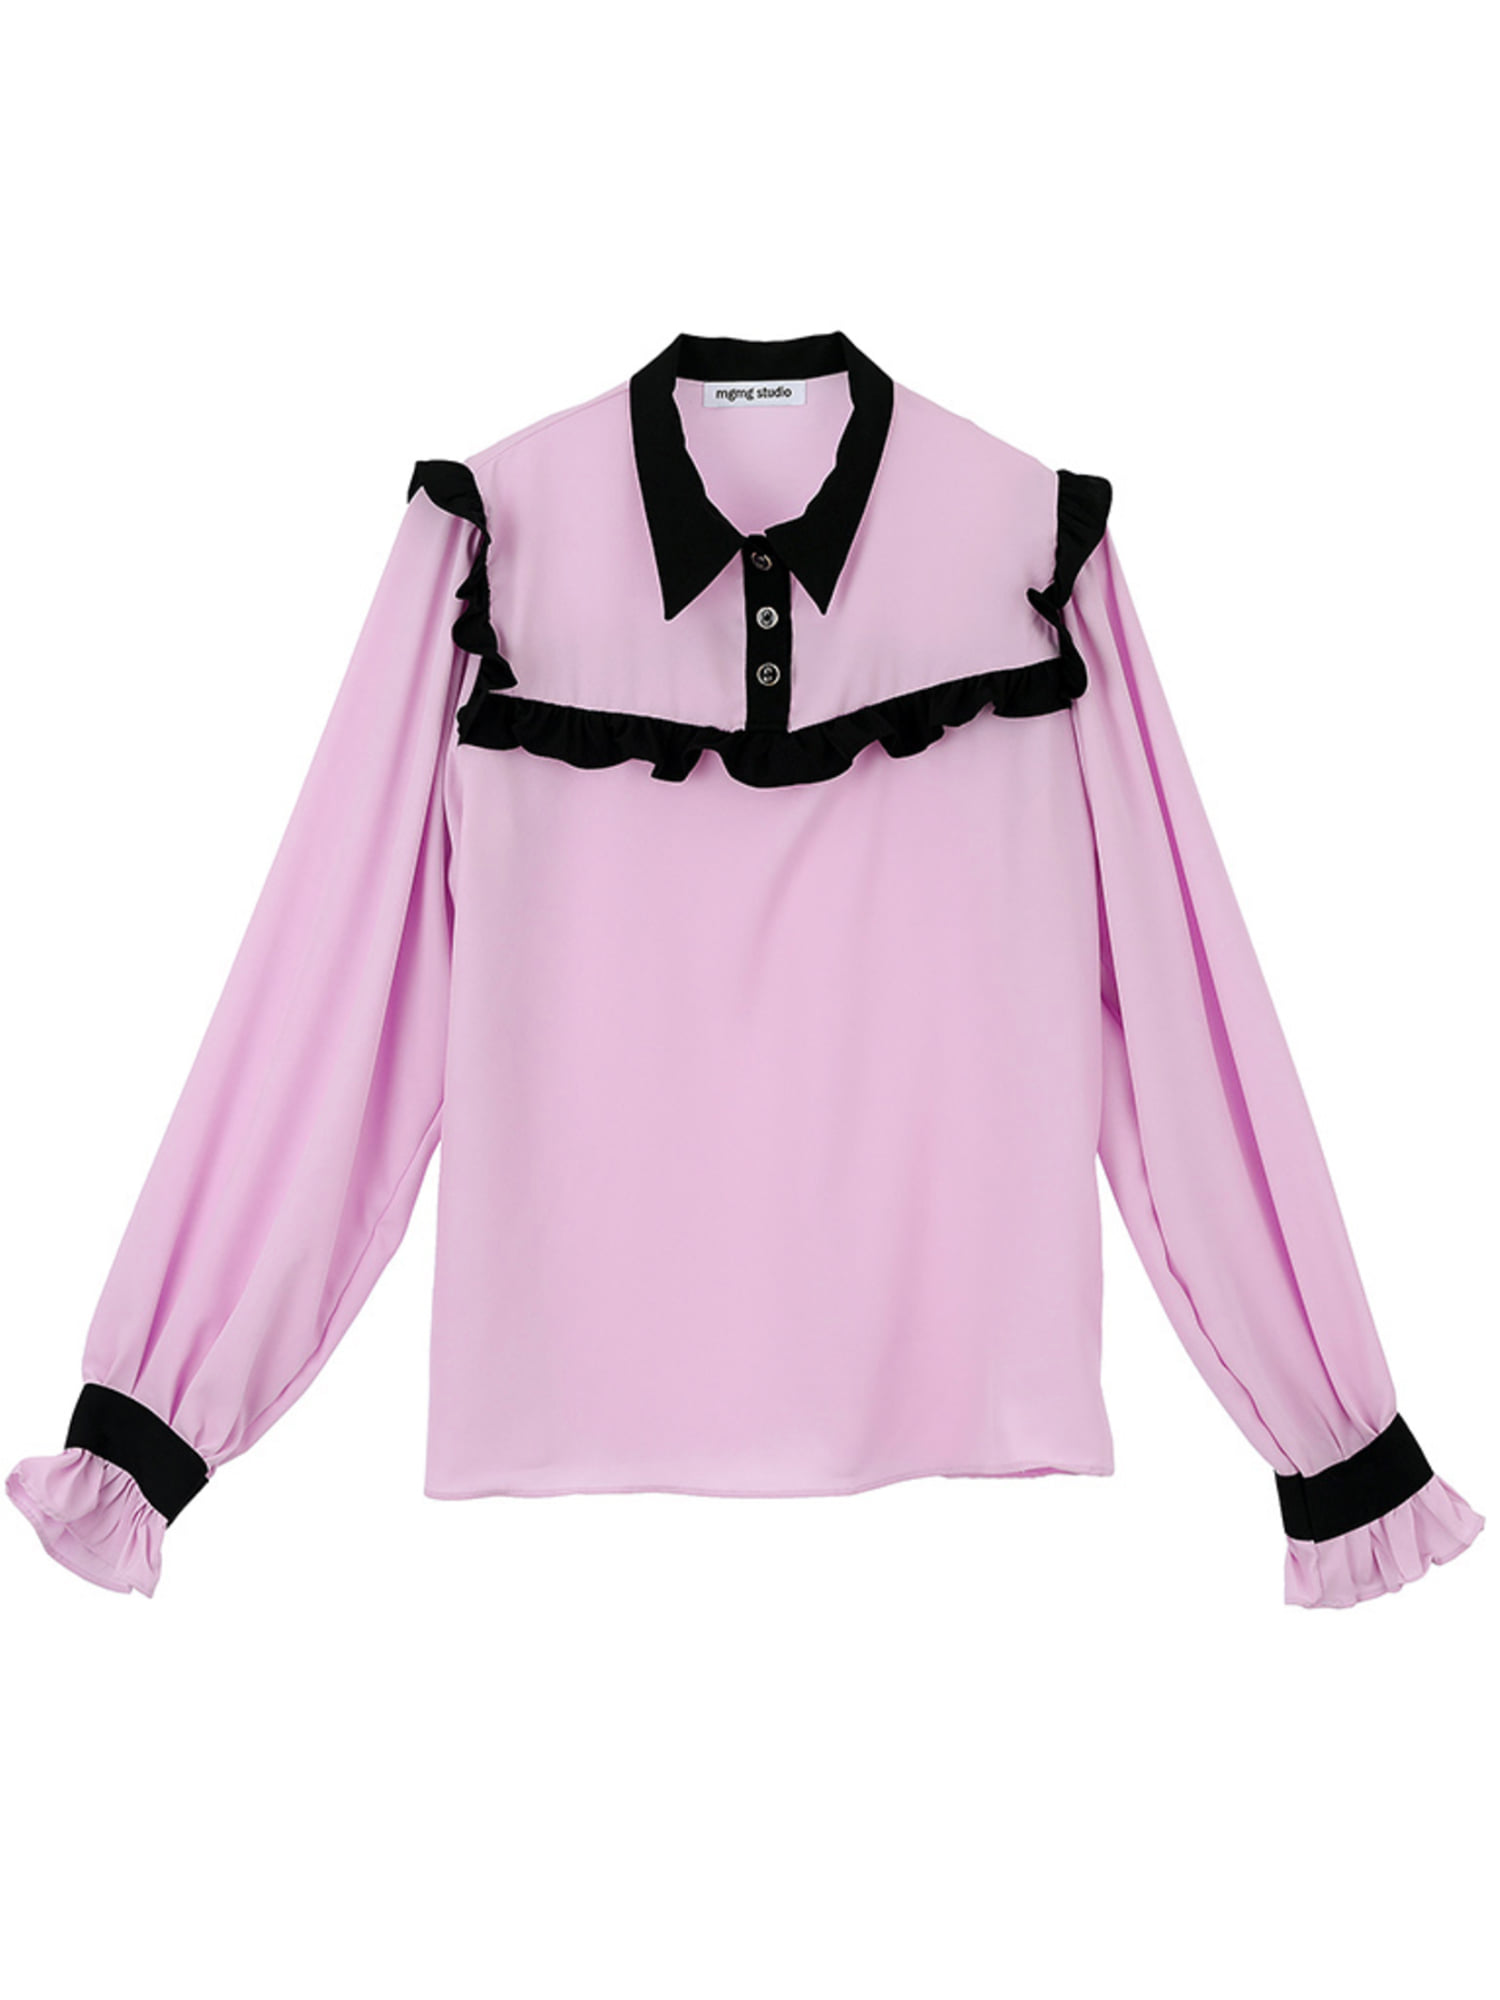 mgmg ruffle point blouse_pink